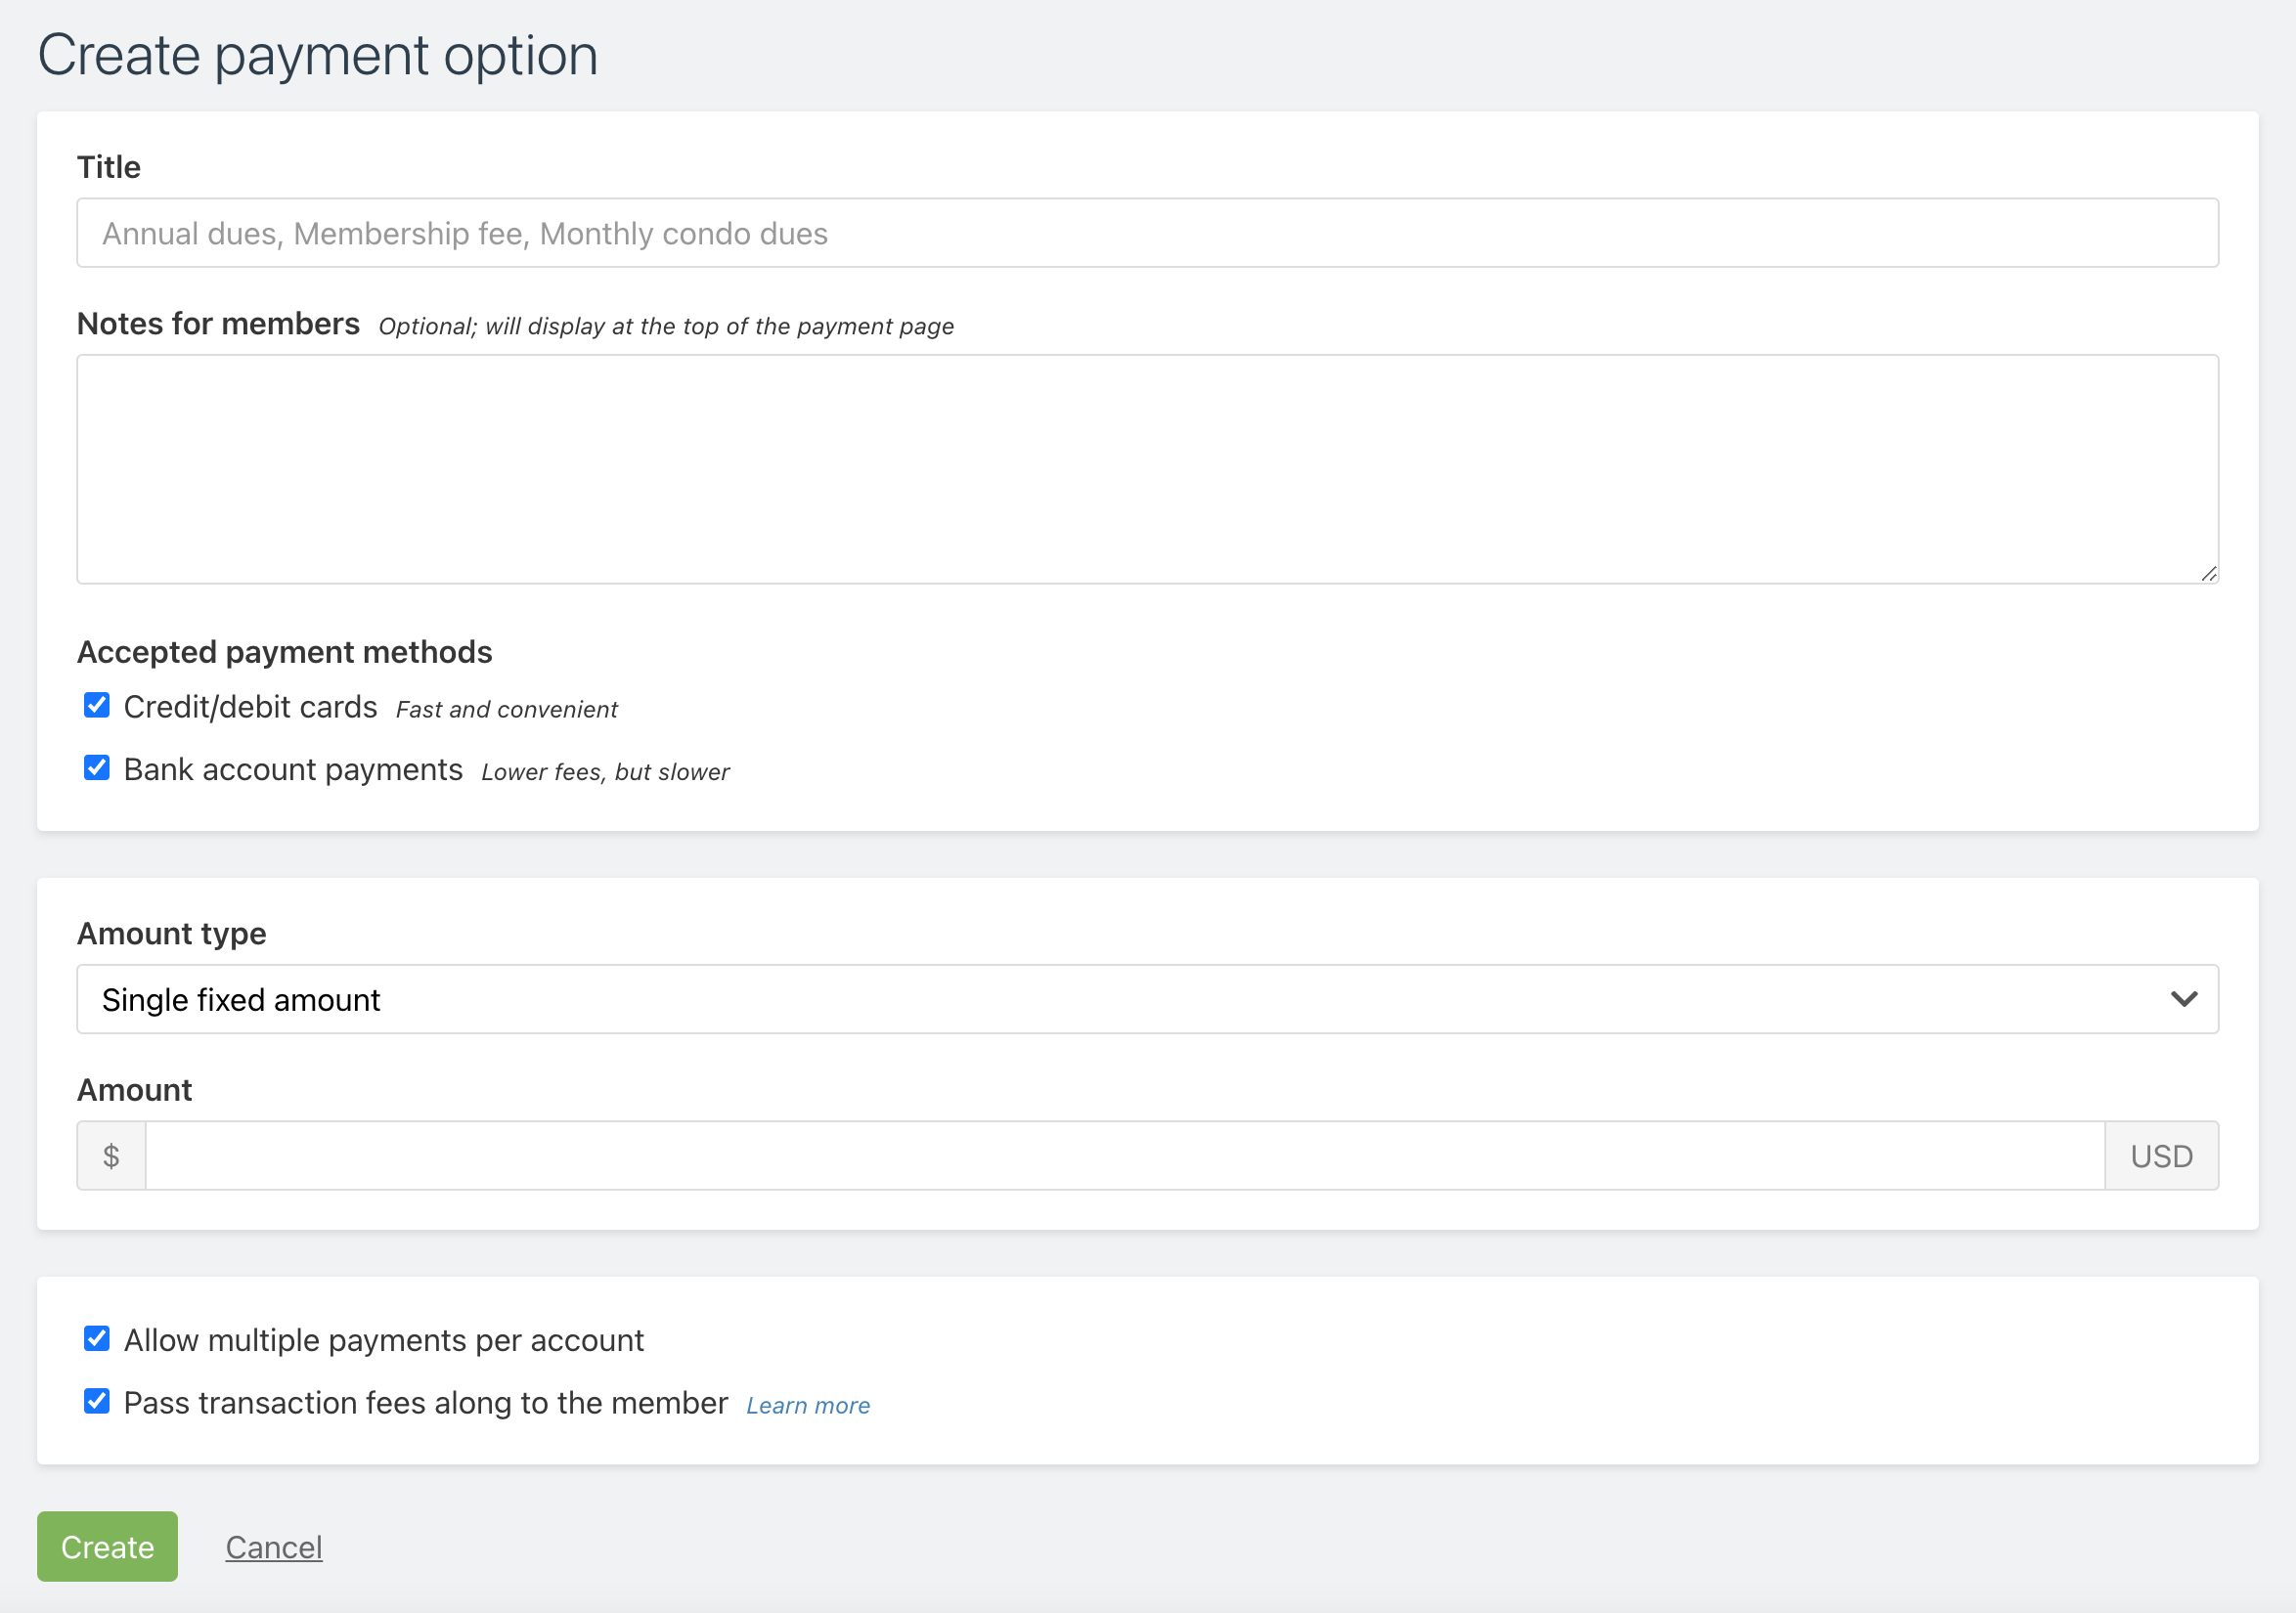 Screenshot of the create payment option page